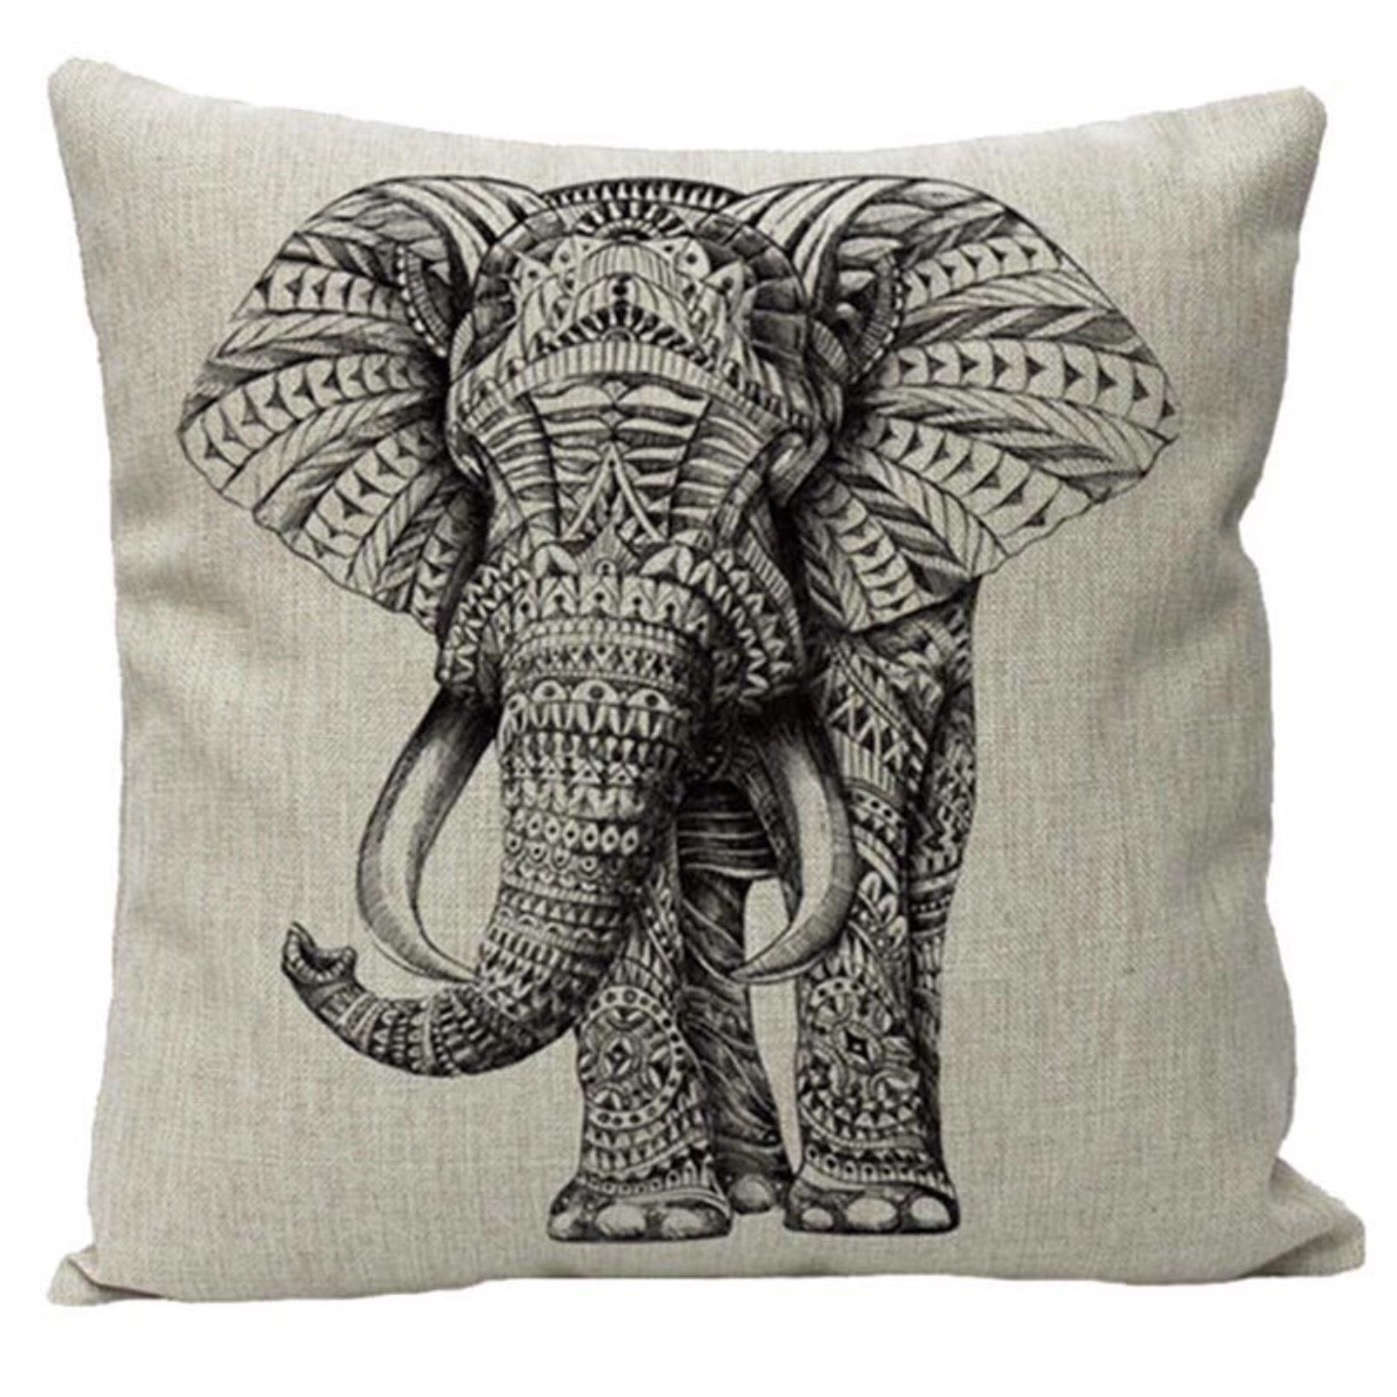 Jumbo the Elephant cushion cover